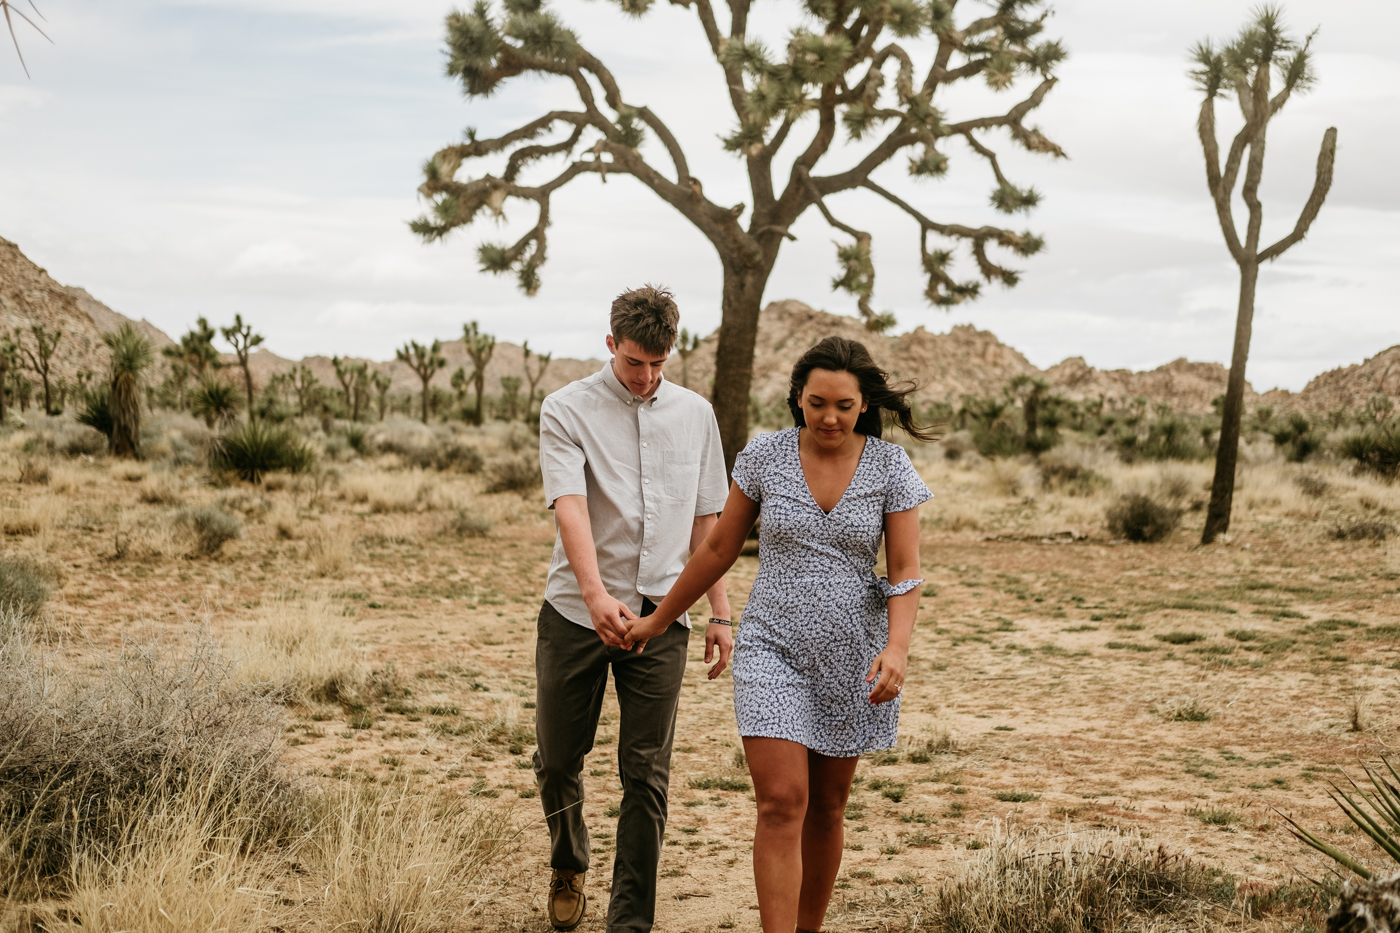 Baliey+Thomas.Engagement.JoshuaTree©mileswittboyer.com2018-13.jpg